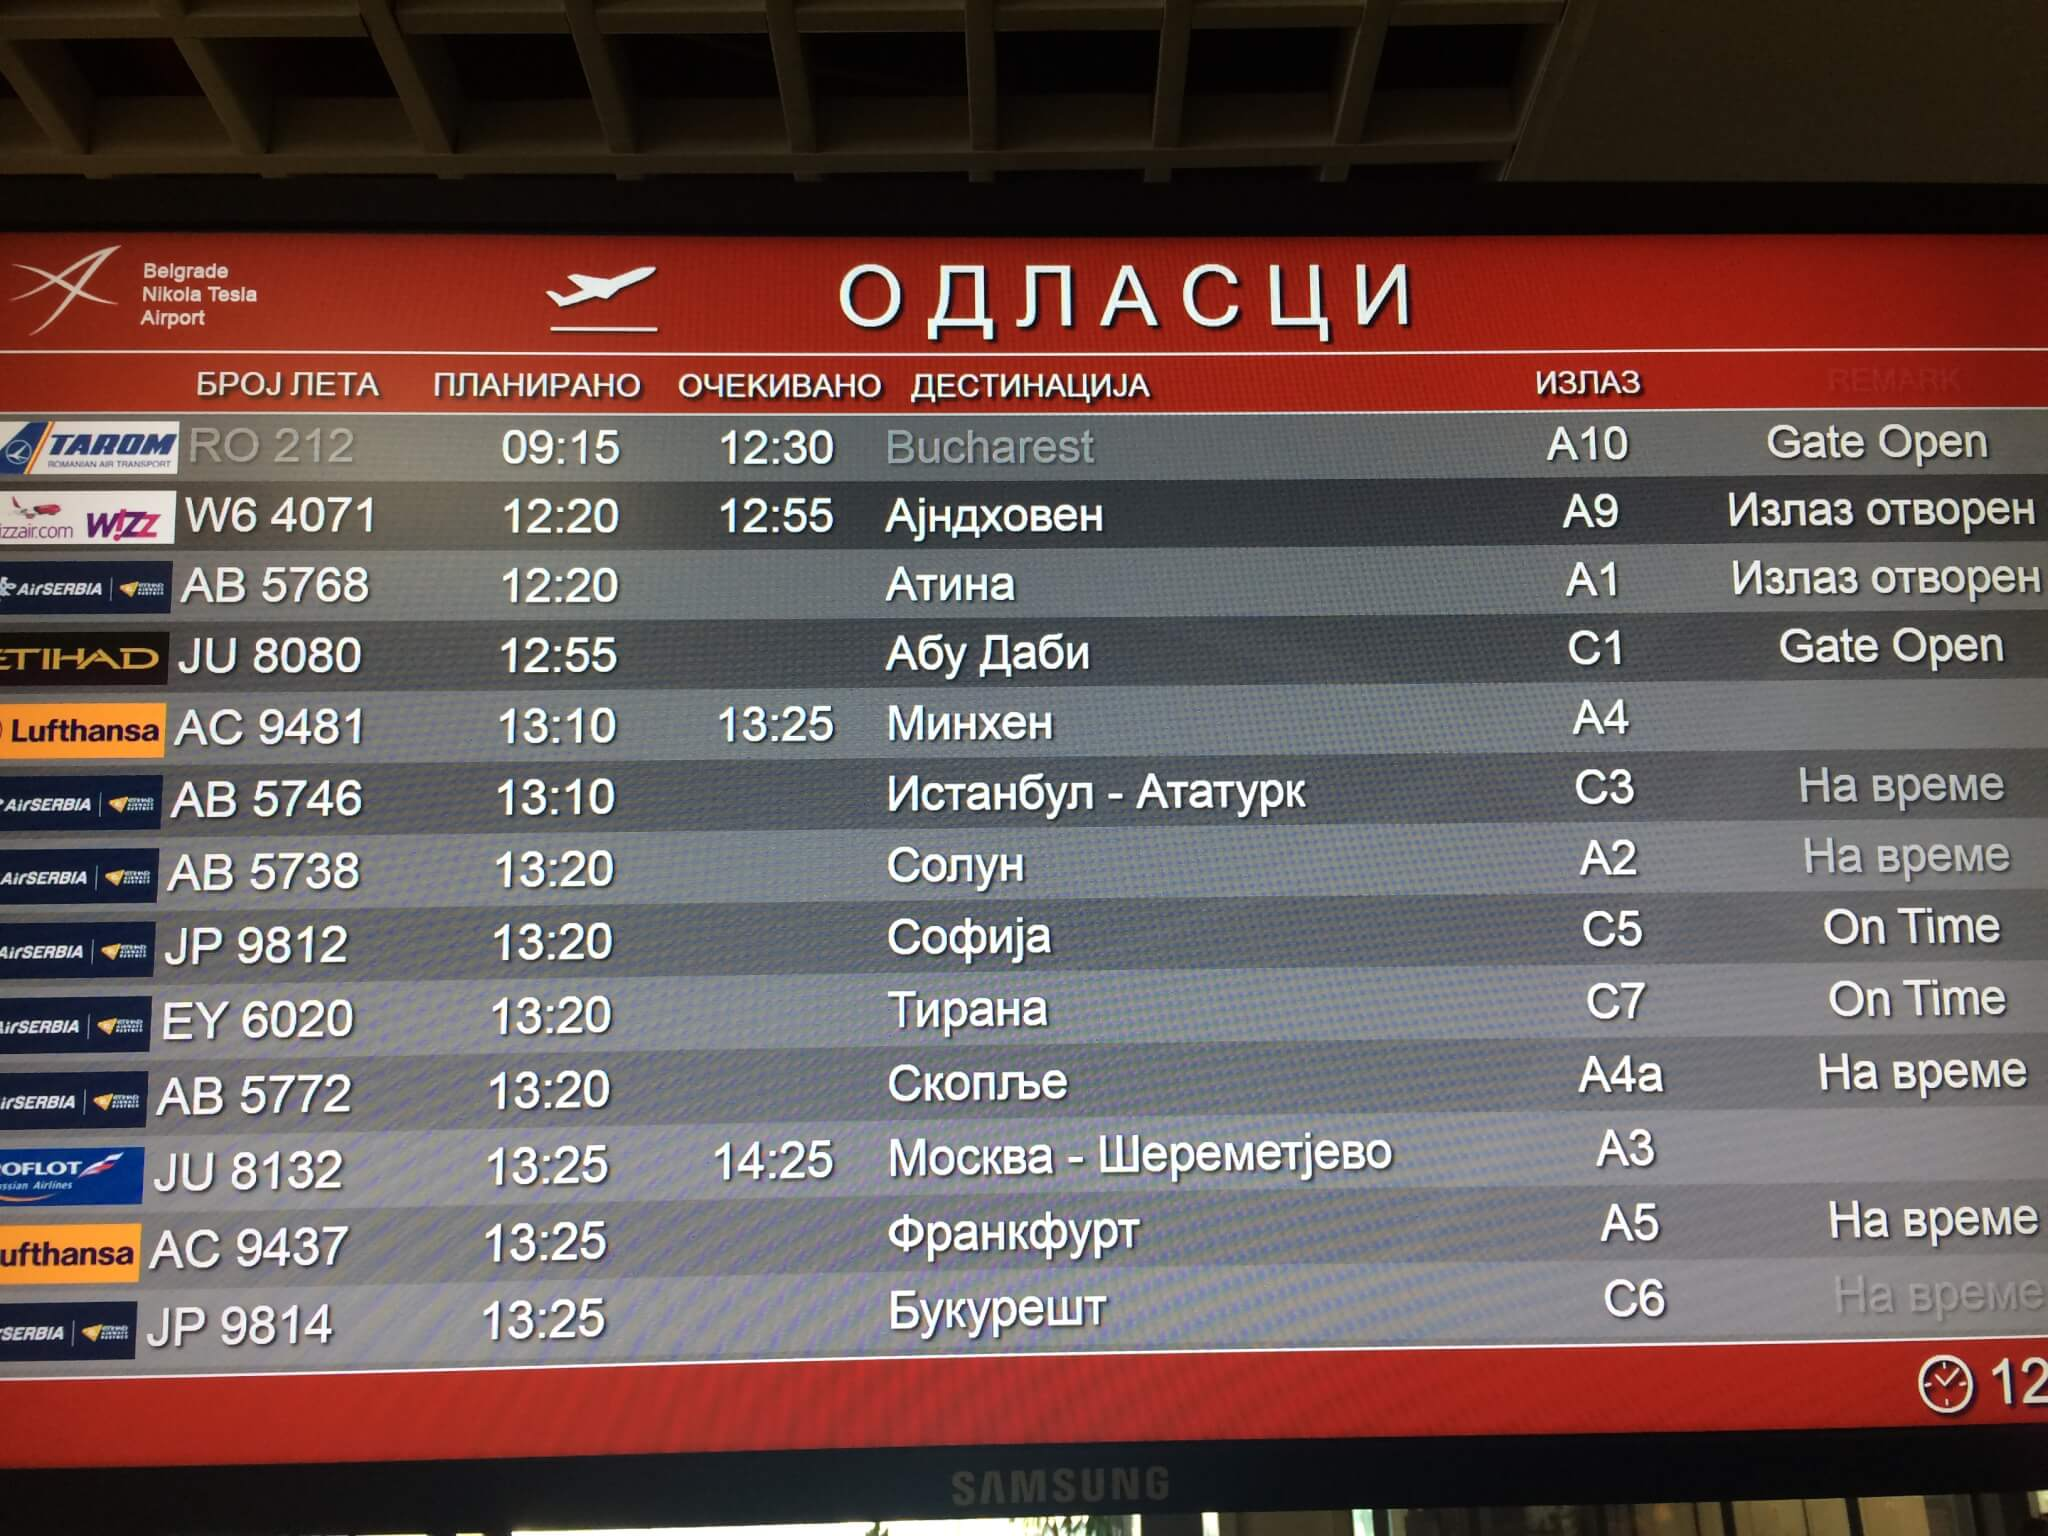 Flights from Beograd airport